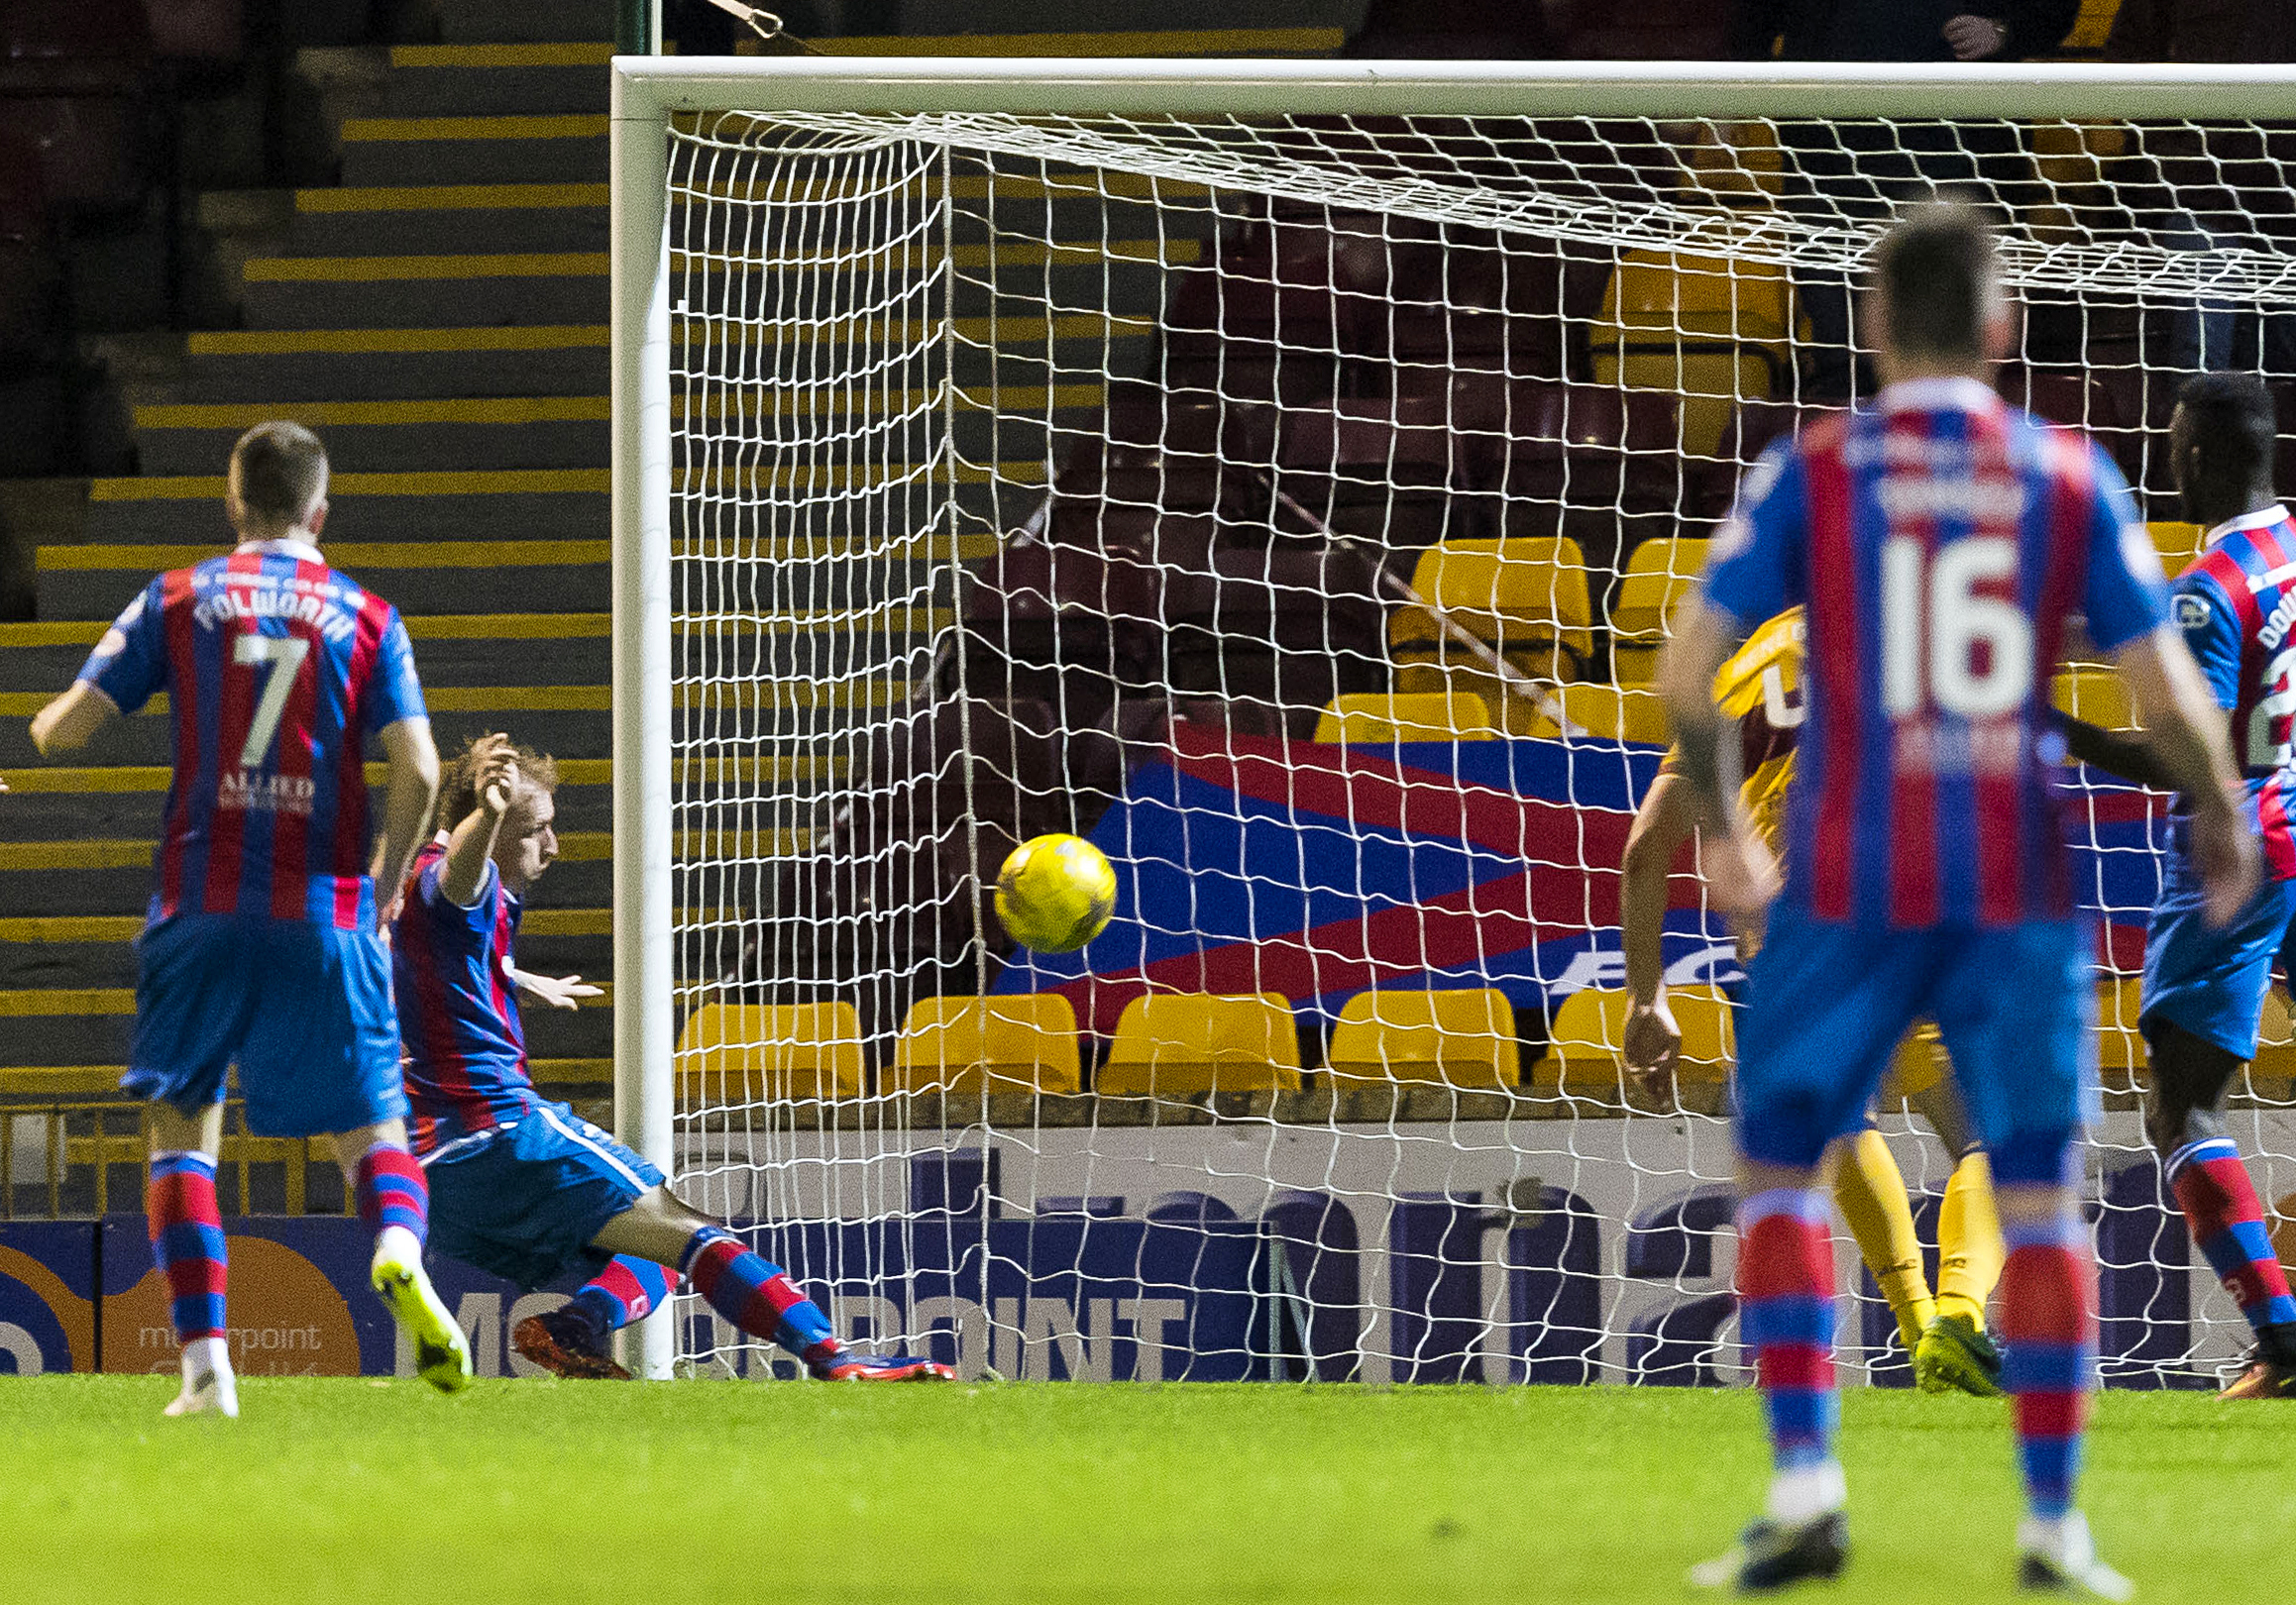 Inverness's Carl Tremarco opens the scoring